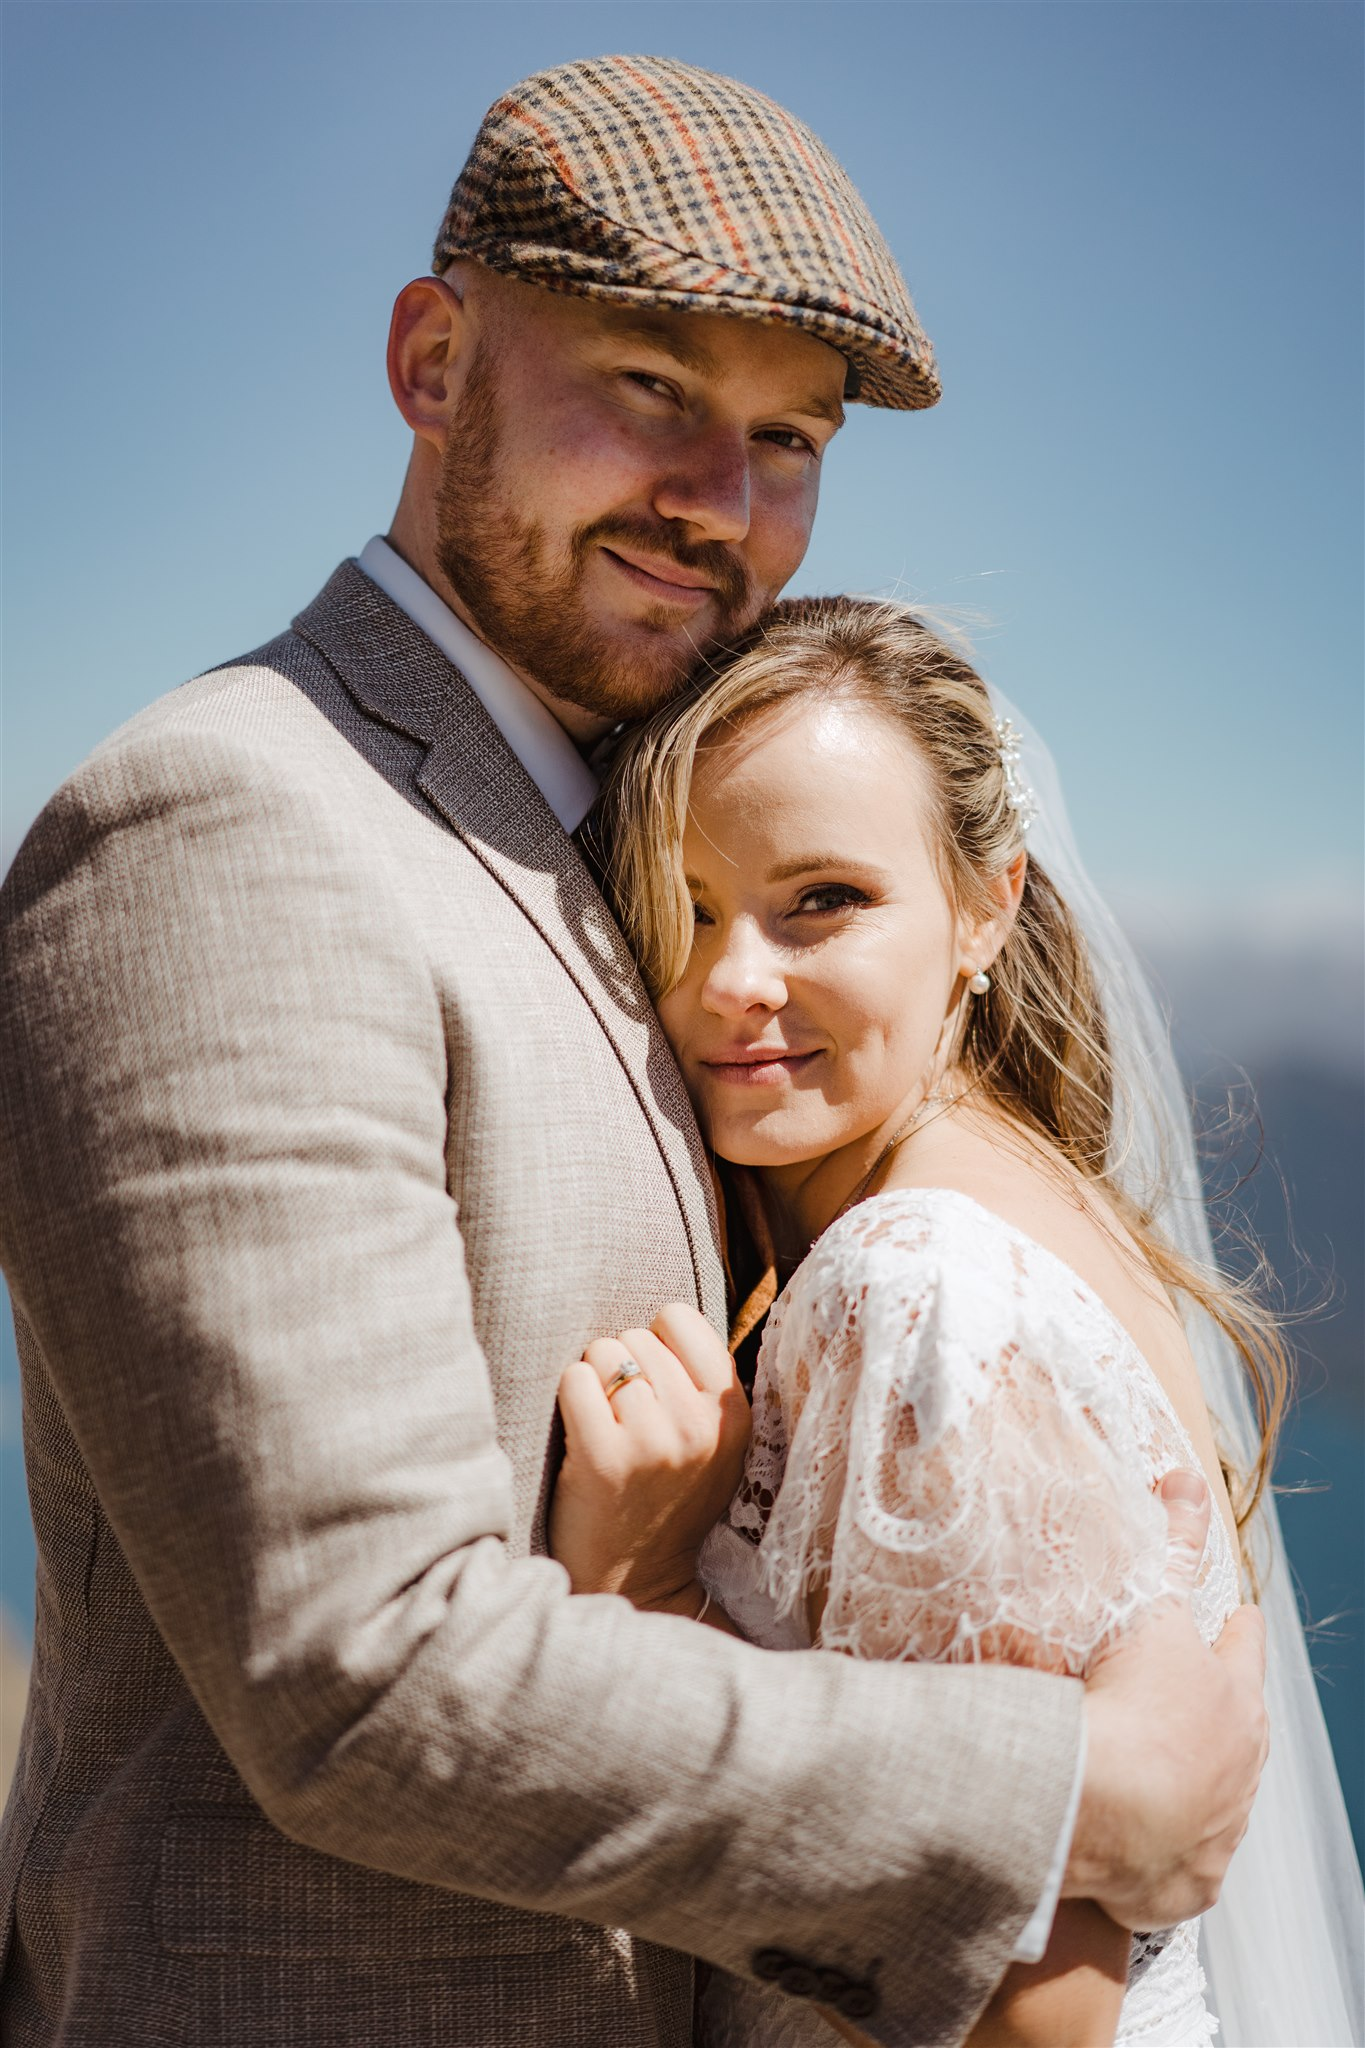 bride and groom cuddle and kiss on mountain top in Queenstown New Zealand in portrait